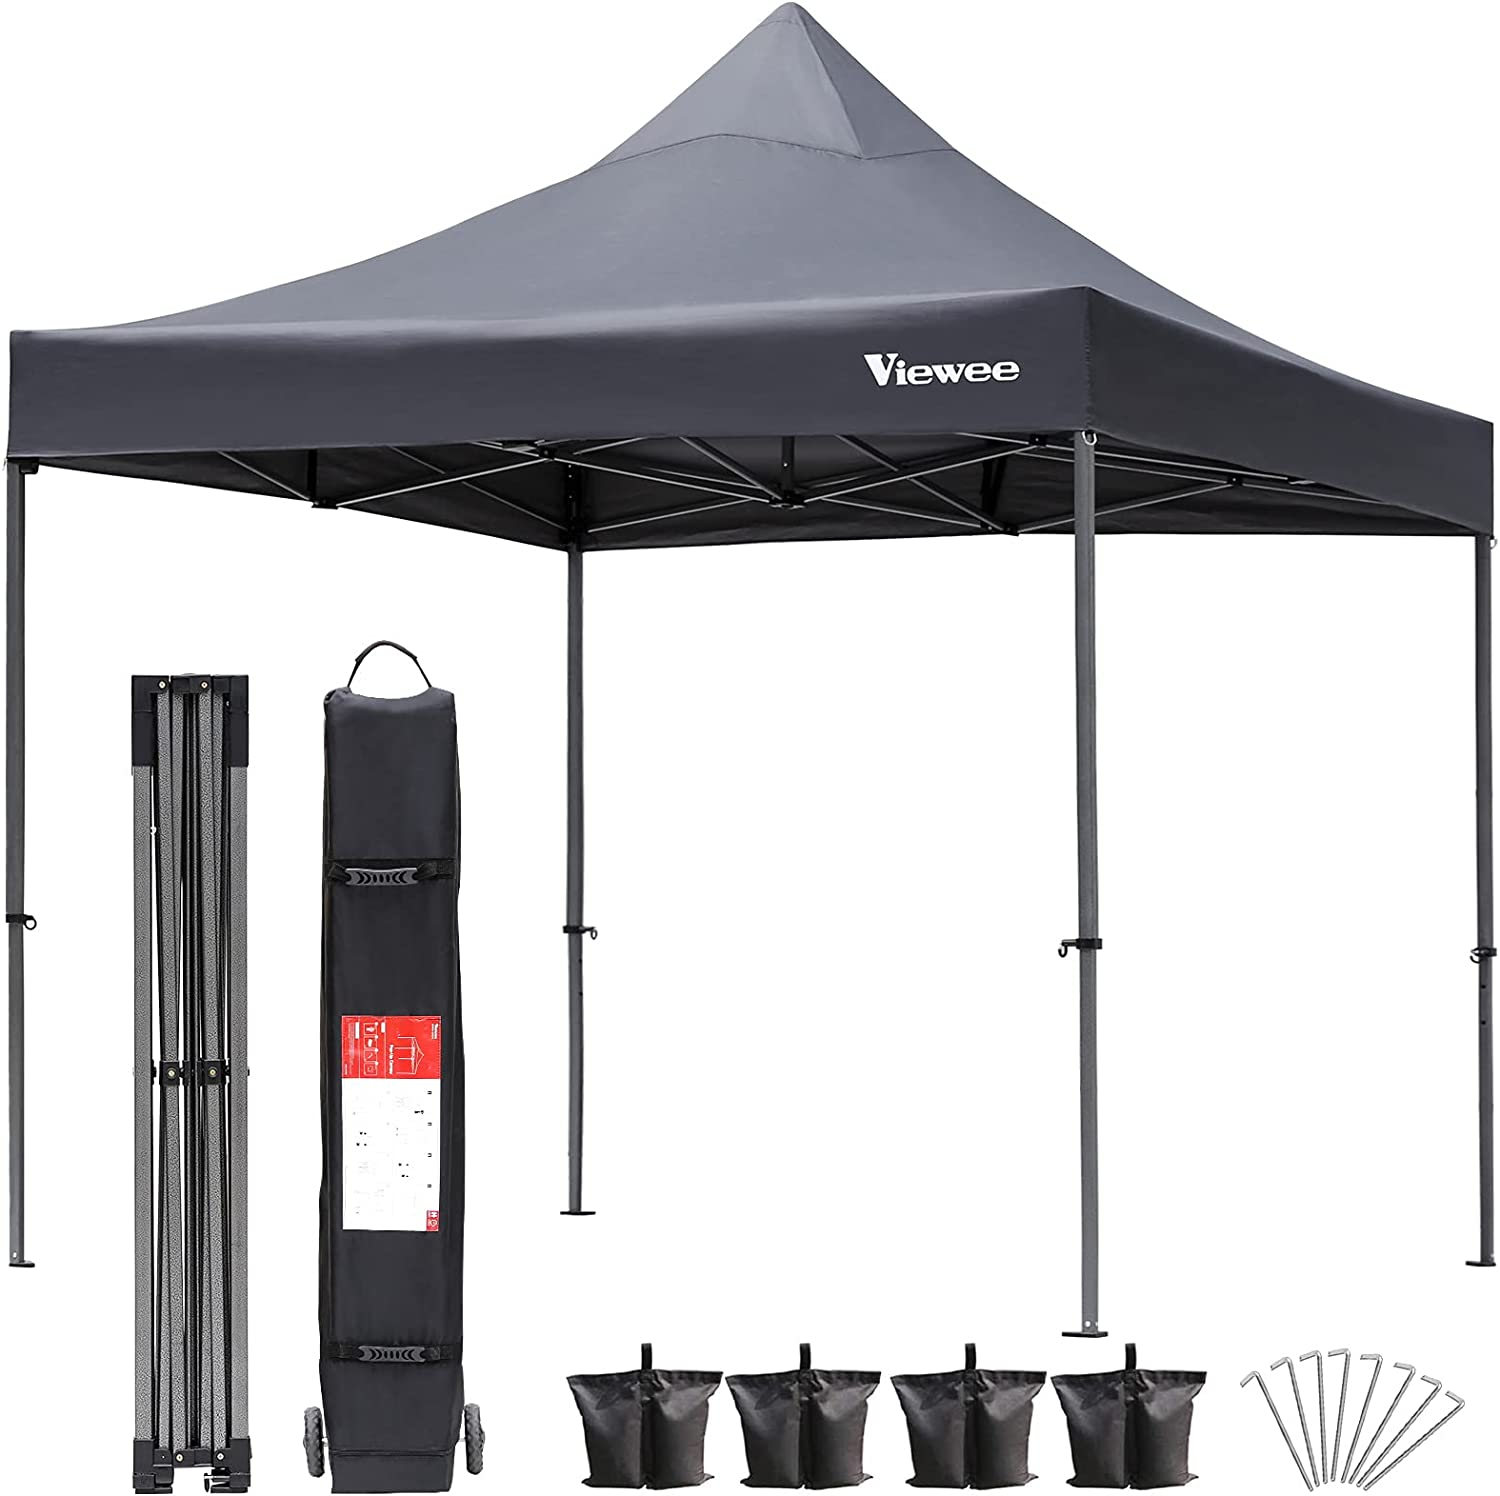 Viewee Pop up Canopy Tent, 10×10 FT Heavy Duty Commercial Instant Canopy Tent with Truss Structure, UV Block Sun Shelter Canopy with Wheeled Carrying Bag and 4 Sandbags for Outdoor Use